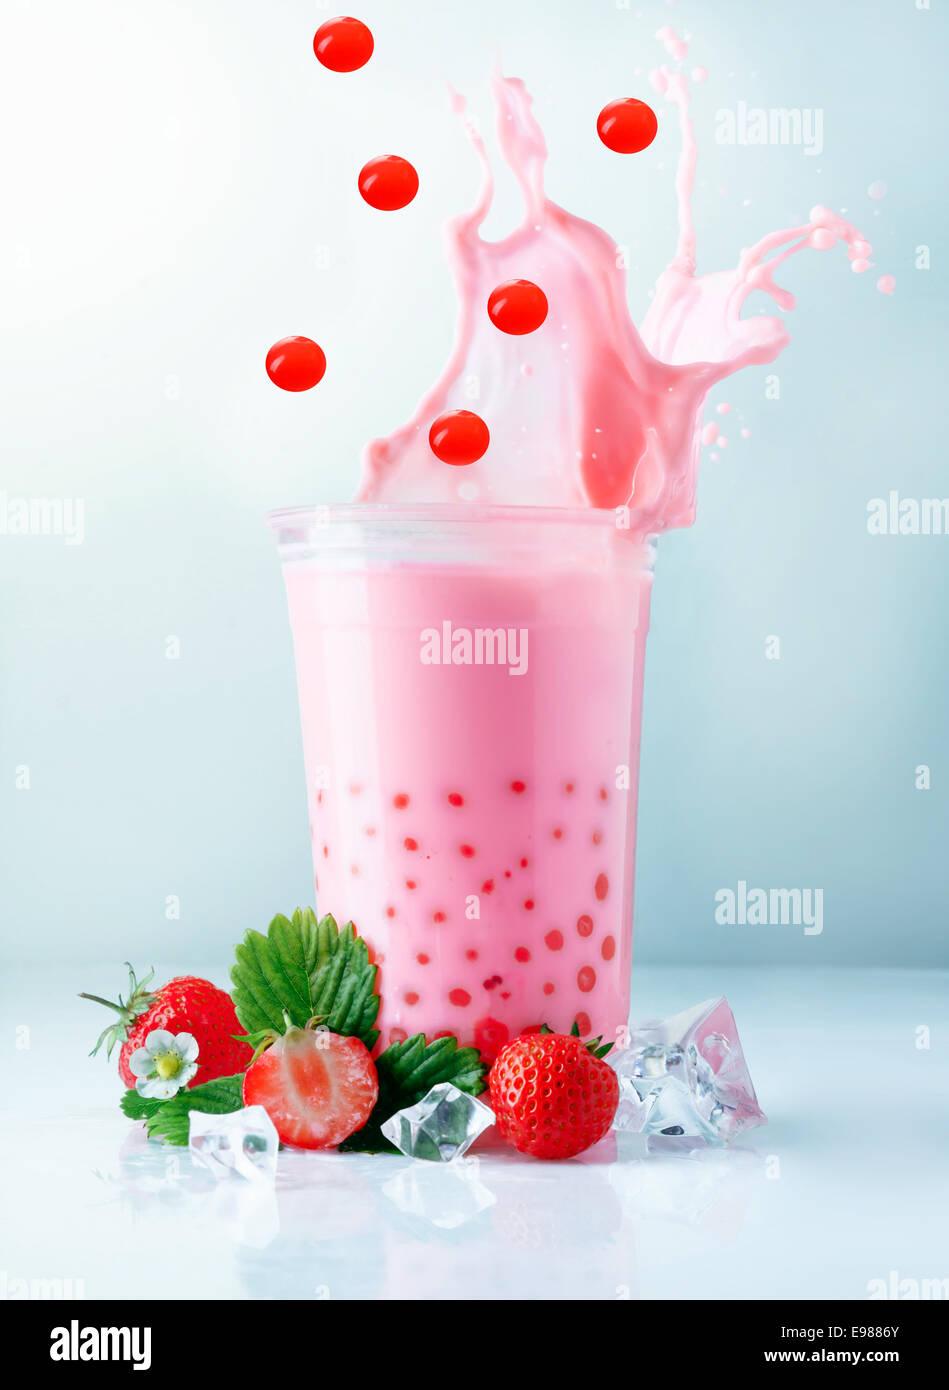 Fruity pink strawberry boba tea splashing from a glass ...